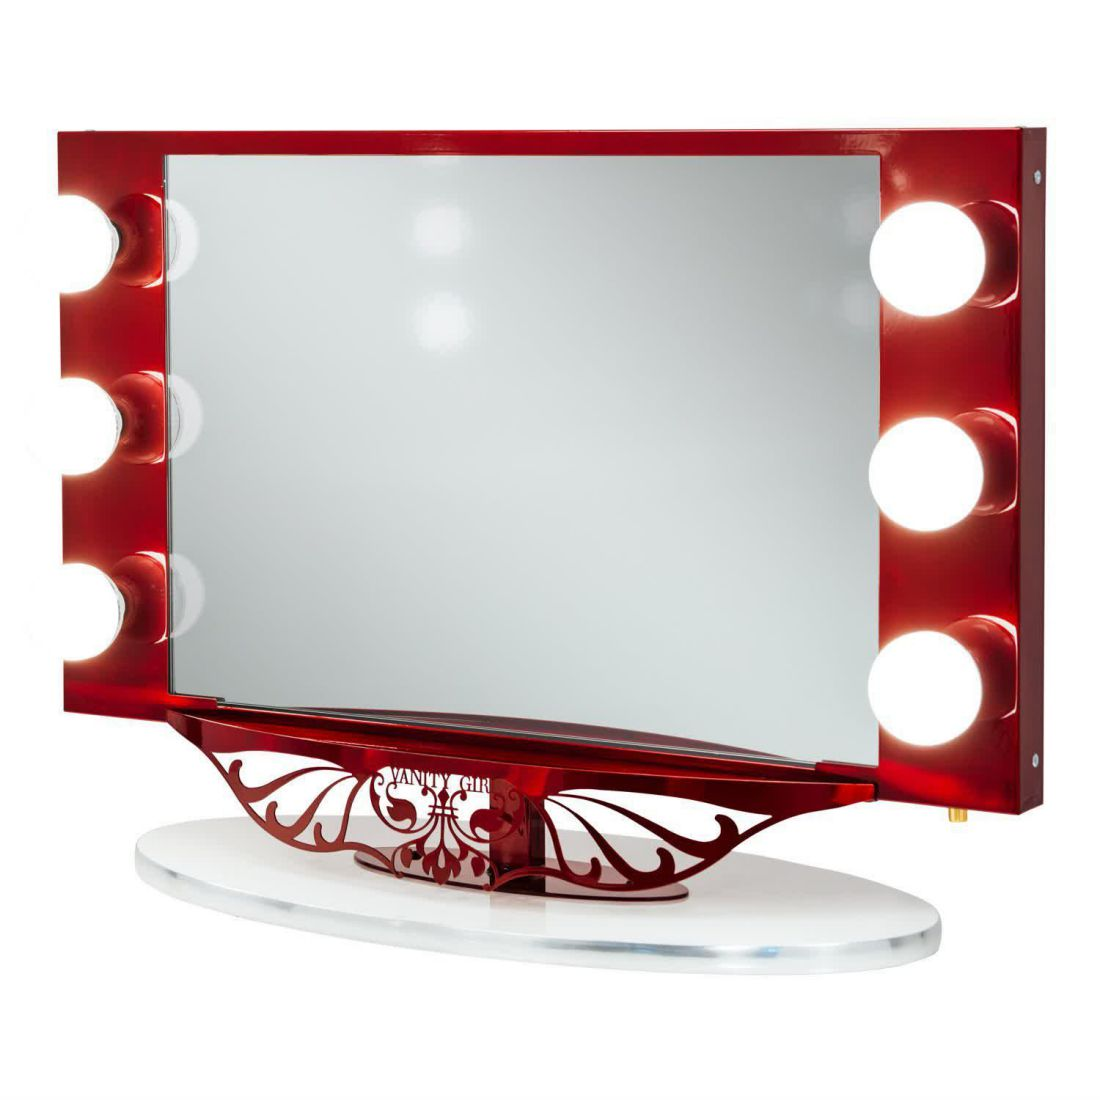 vanity girl hollywood starlet lighted vanity mirror red. Black Bedroom Furniture Sets. Home Design Ideas